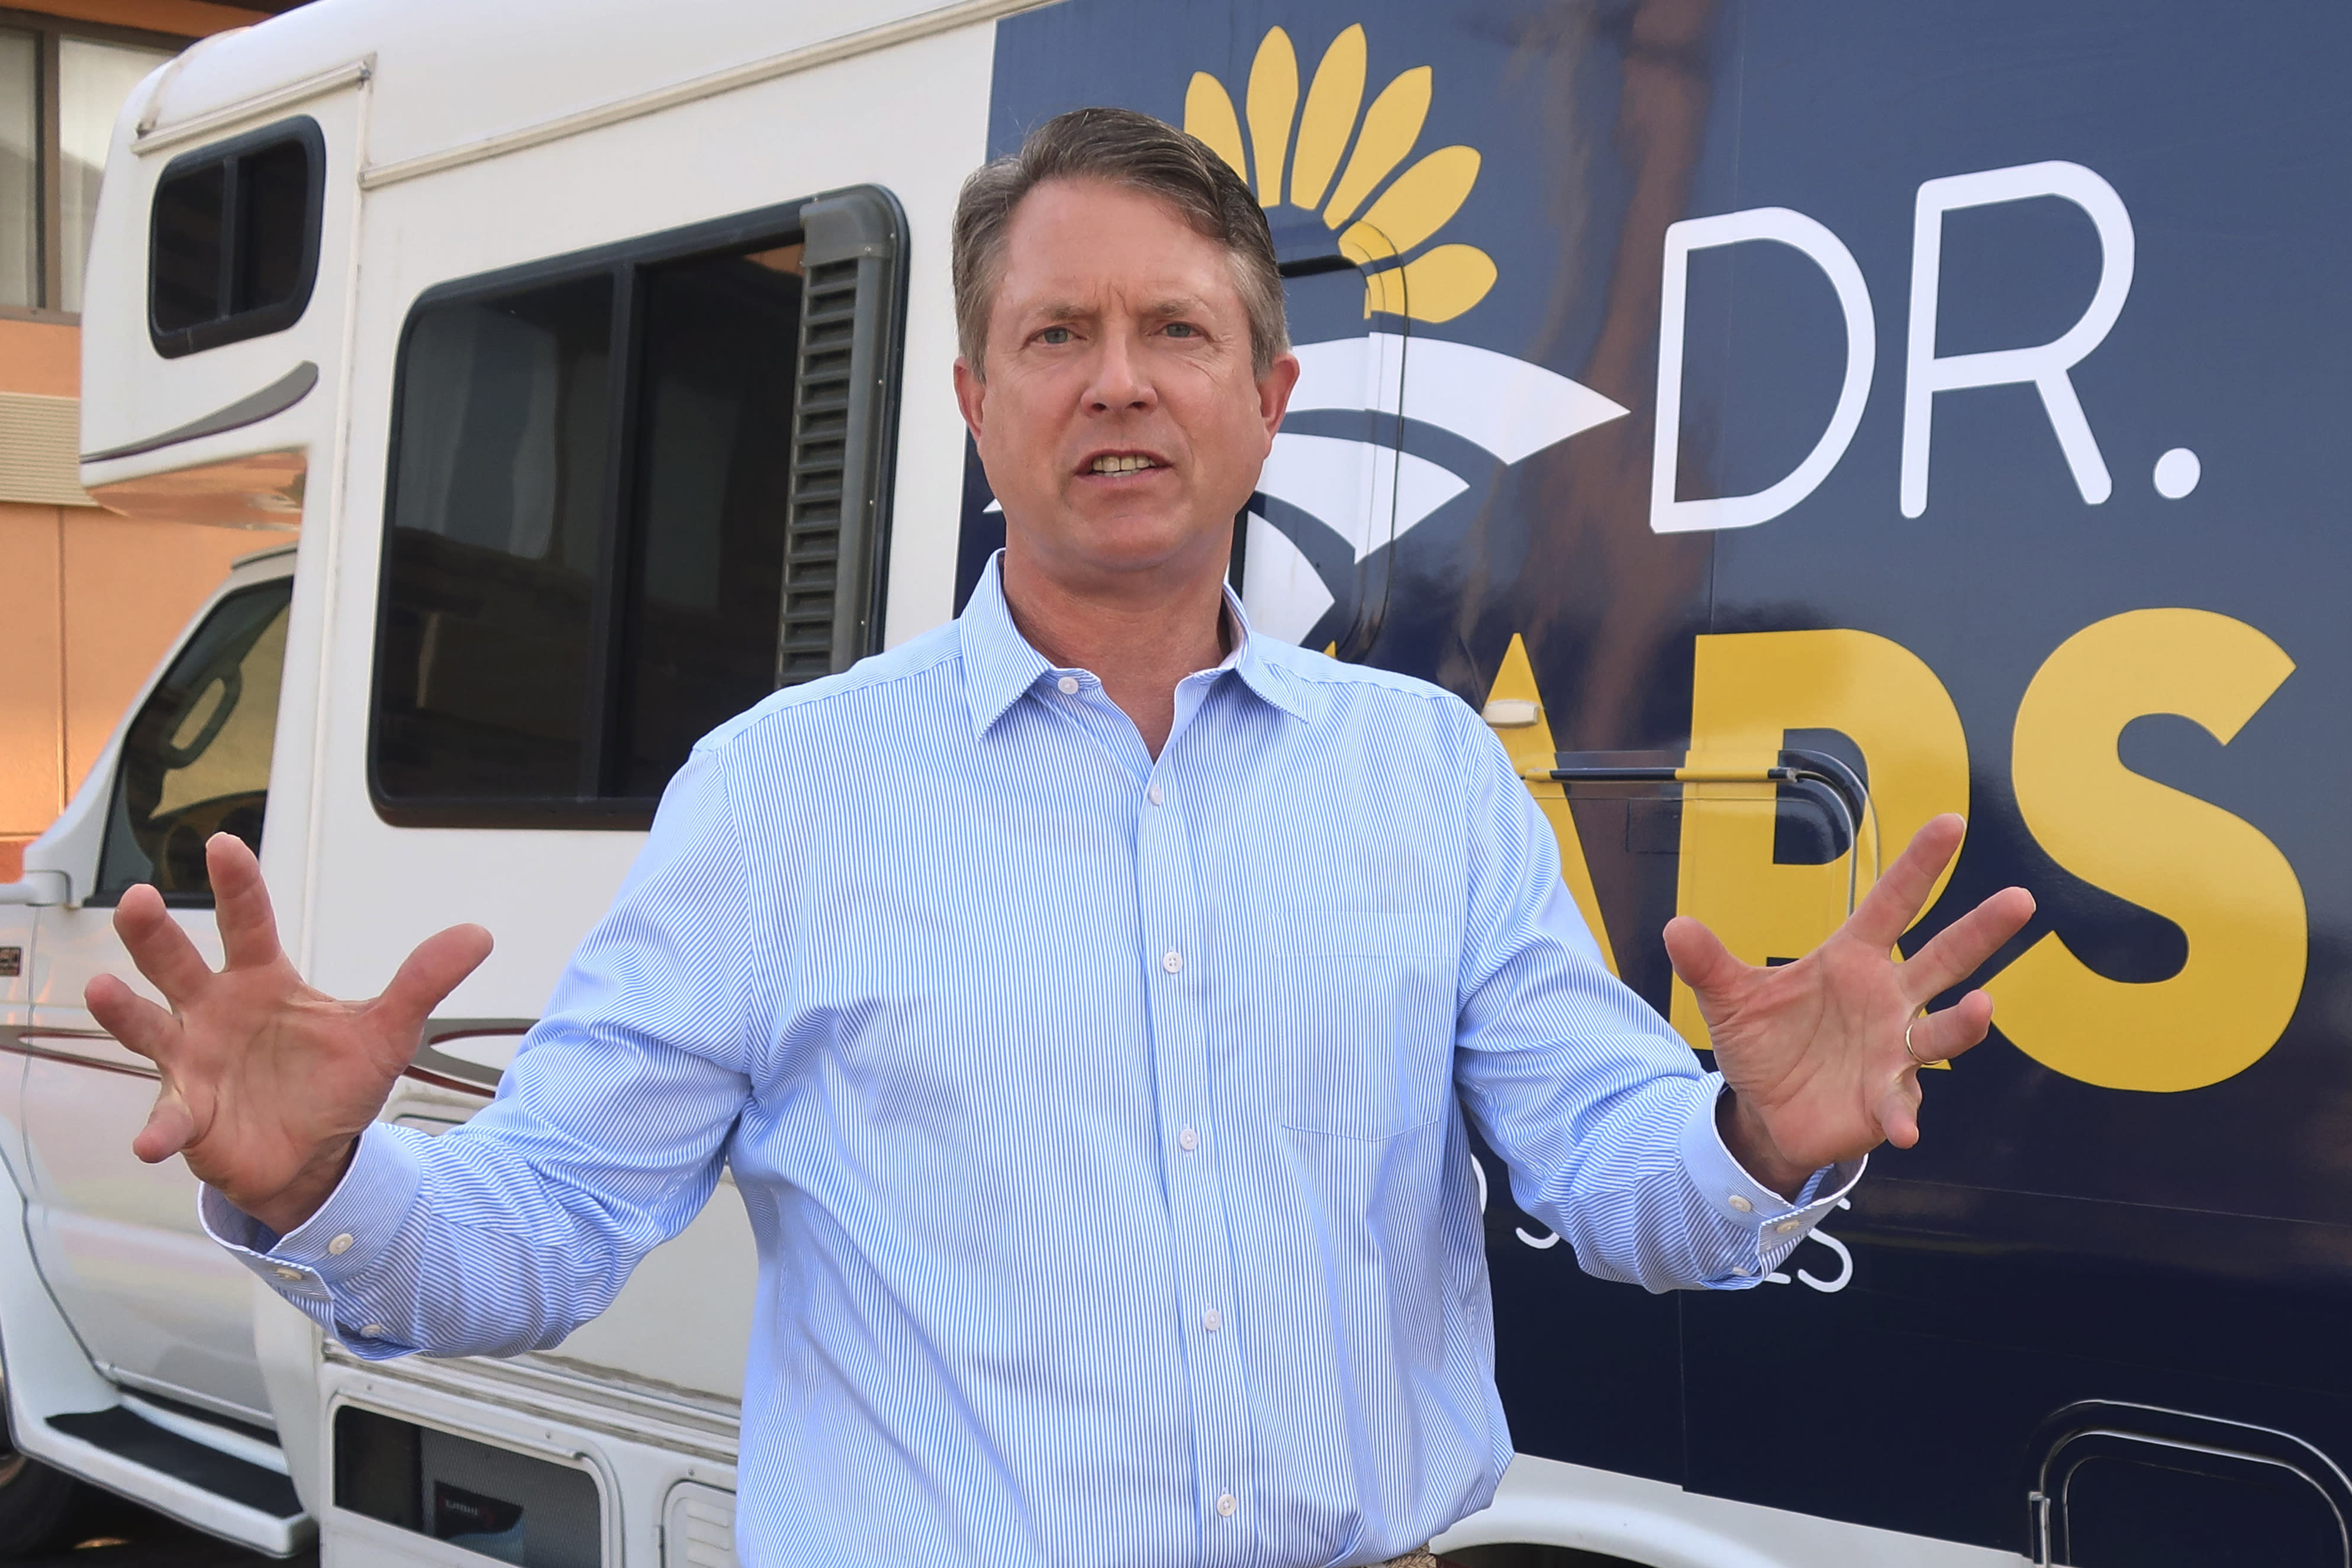 """FILE - In this Sept. 5, 2019 file photo, U.S. Rep. Roger Marshall, R.-Kan., speaks to an Associated Press reporter outside an RV he uses in traveling the state, during a visit to Topeka, Kansas. Political icon and 1996 Republican presidential nominee Bob Dole on Monday Jan. 13, 2020, endorsed western Kansas' congressman in the state's GOP Senate primary. Marshall's campaign announced Dole's backing and Dole tweeted that Marshall is """"a true friend to KS."""" Marshall has served in Congress since 2017. (AP Photo/John Hanna,File)"""